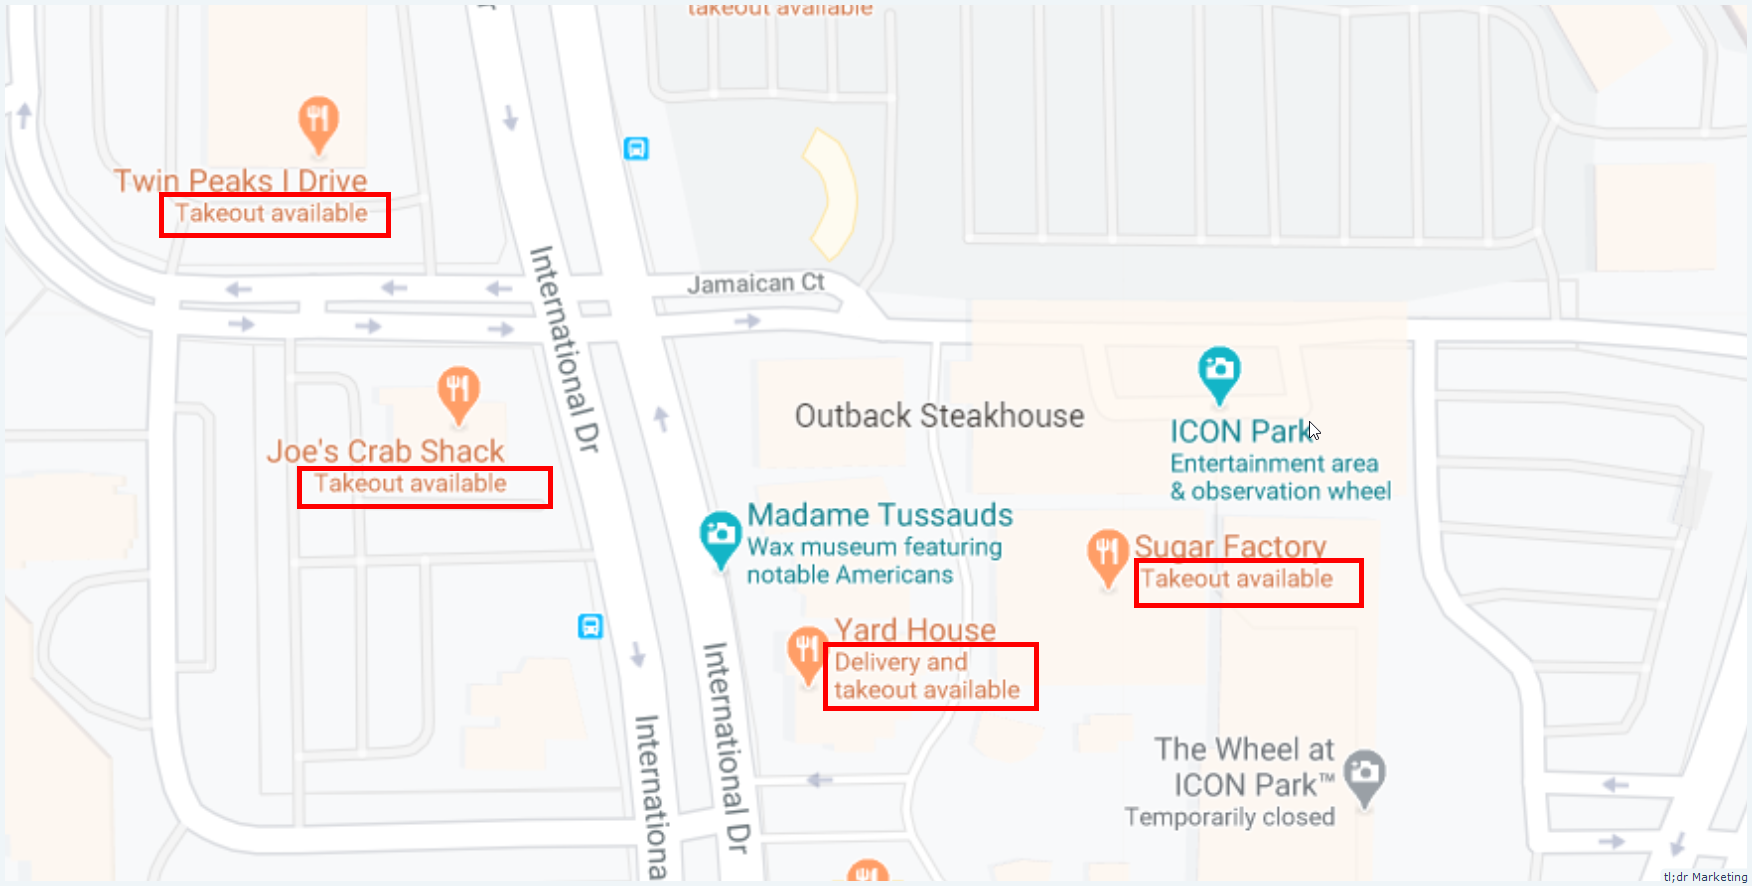 Google Maps Starts to Show Takeout & Delivery Available in Place of GMB Tagline